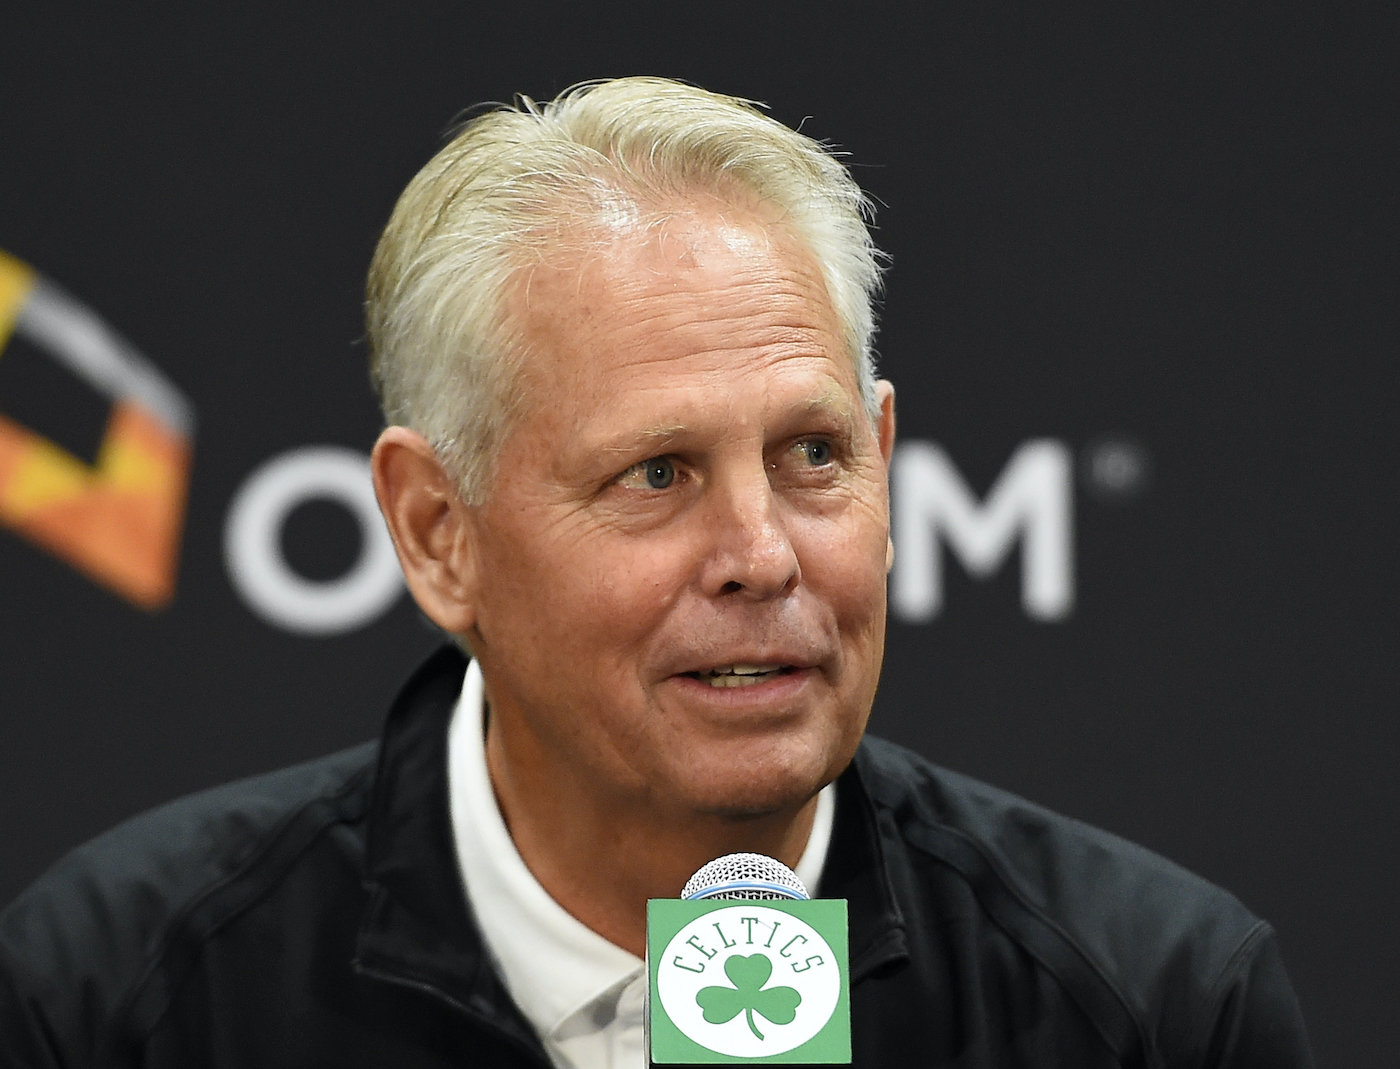 The Celtics' Danny Ainge is the NBA's Most Underrated Executive